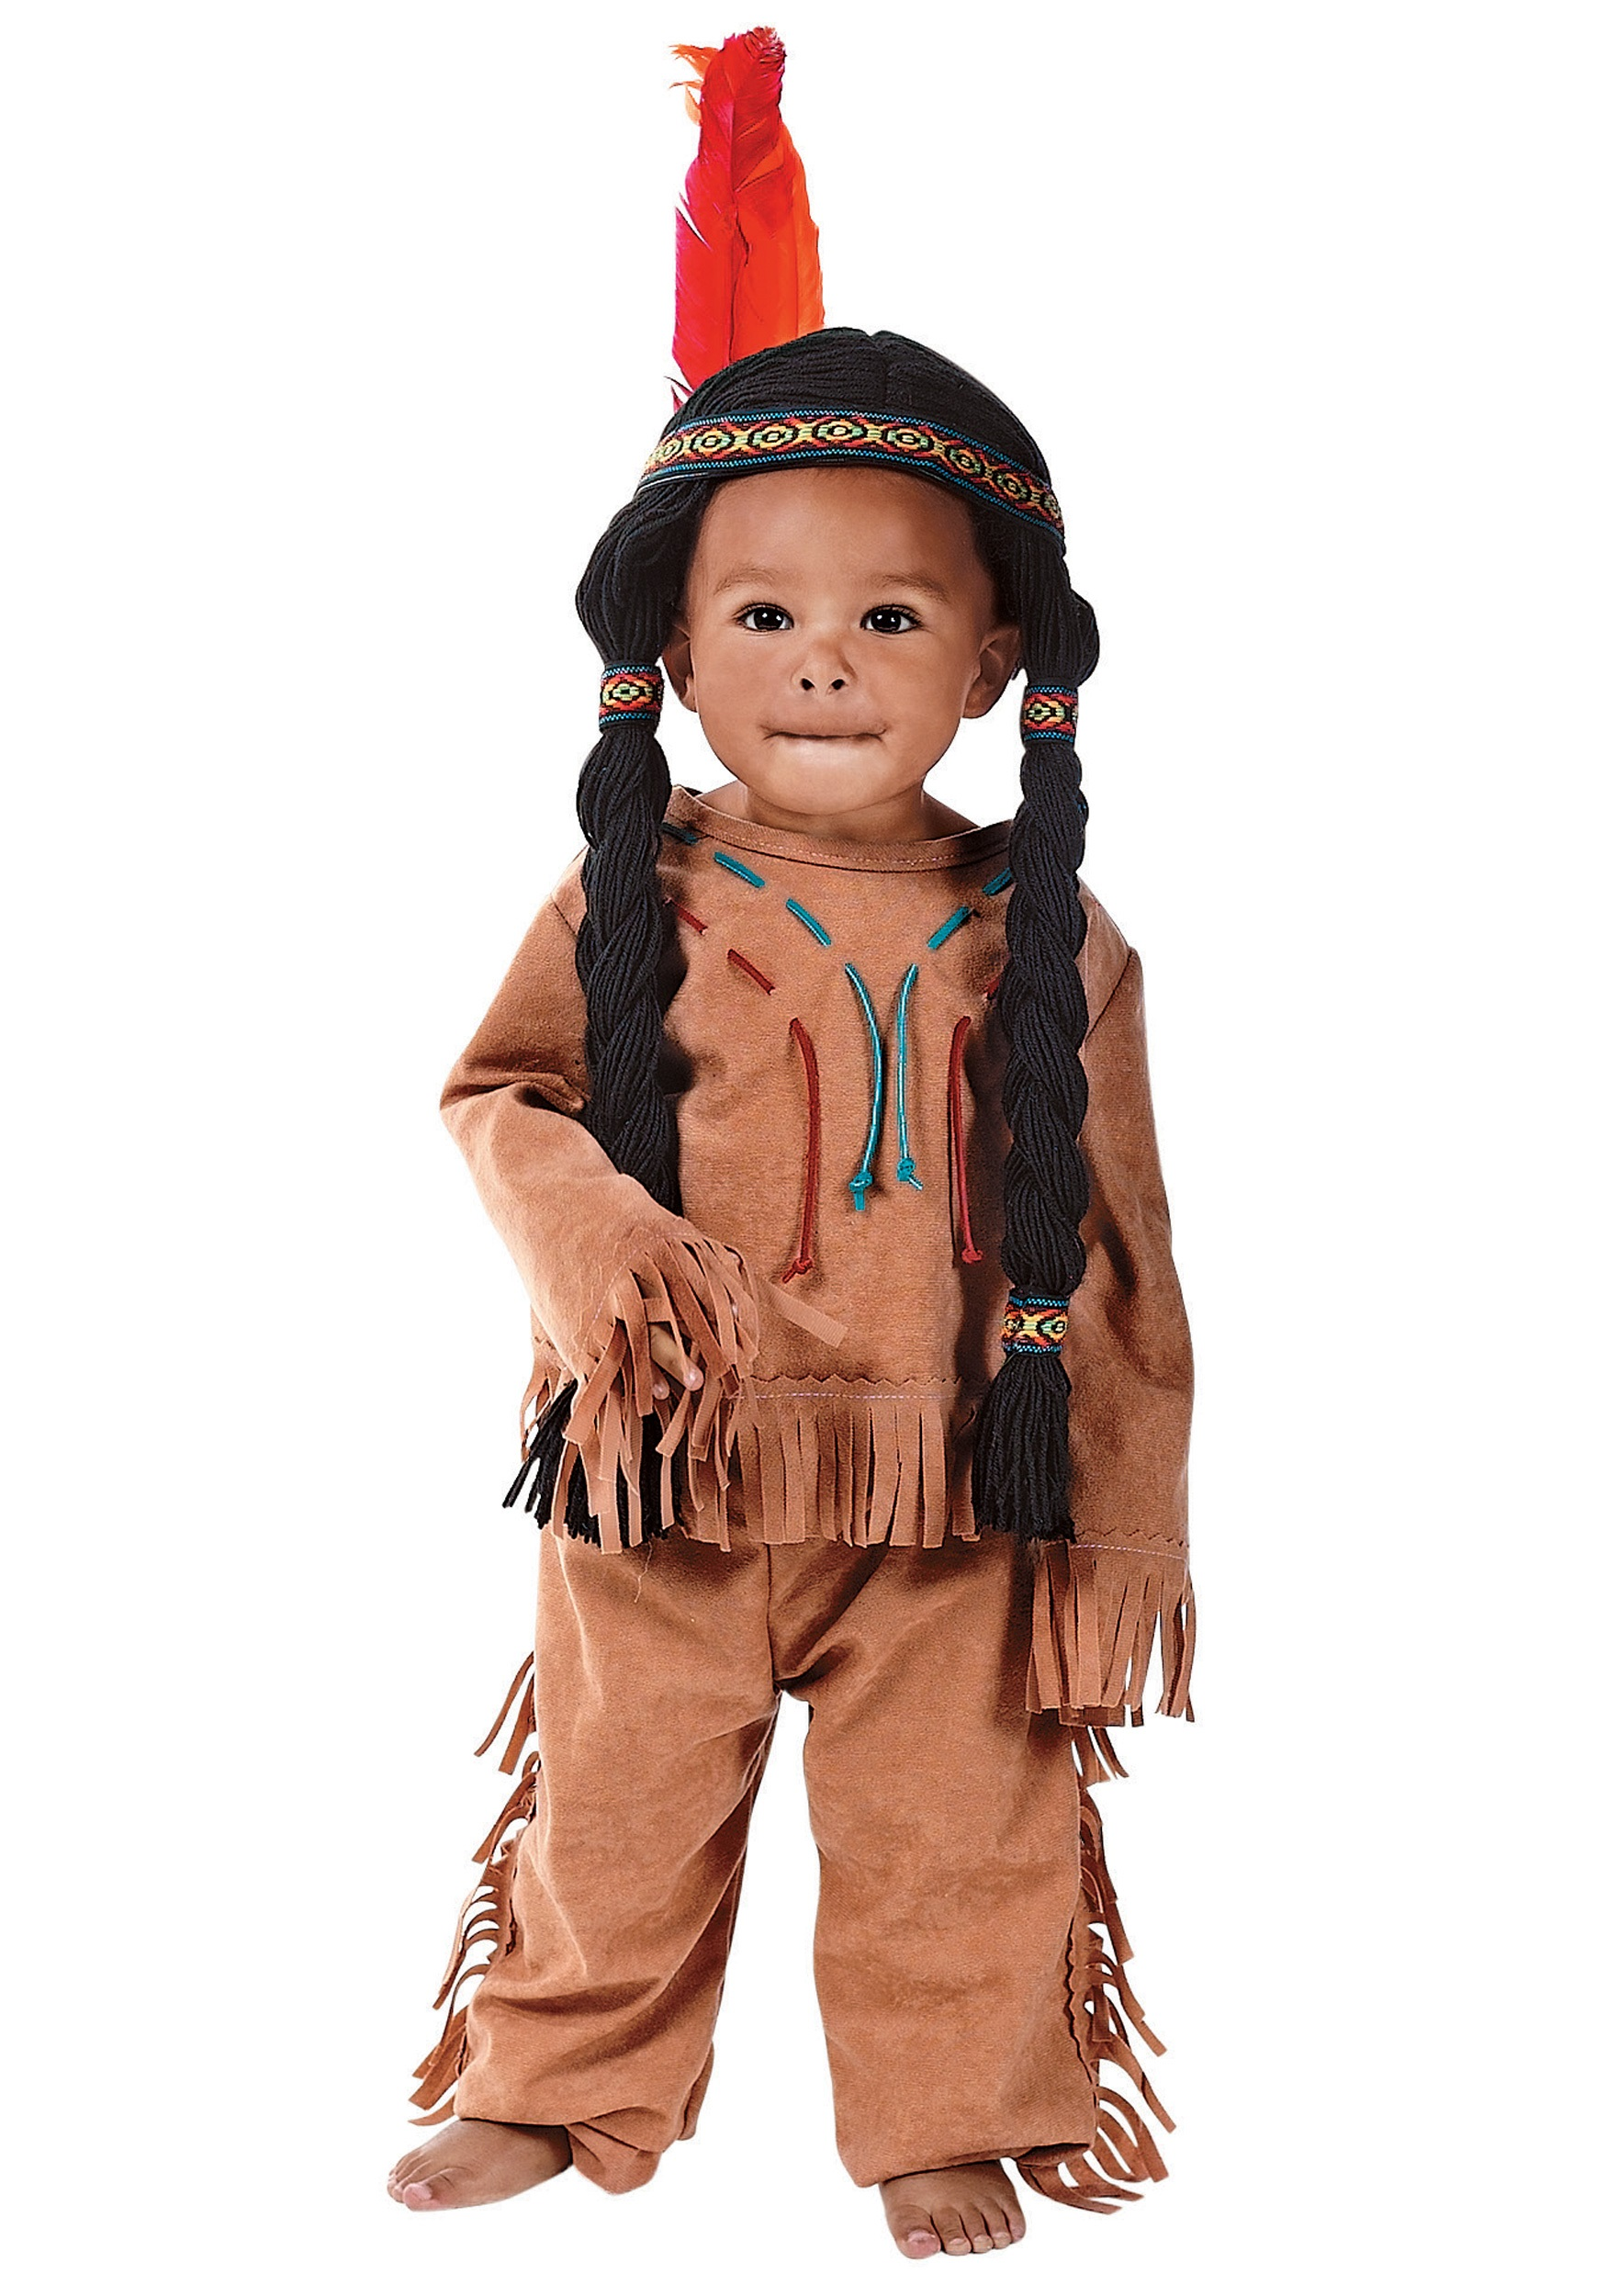 Toddler Boys Indian Costume  sc 1 st  Halloween Costume & Toddler Boys Indian Costume - Boys Toddler Indian Costumes